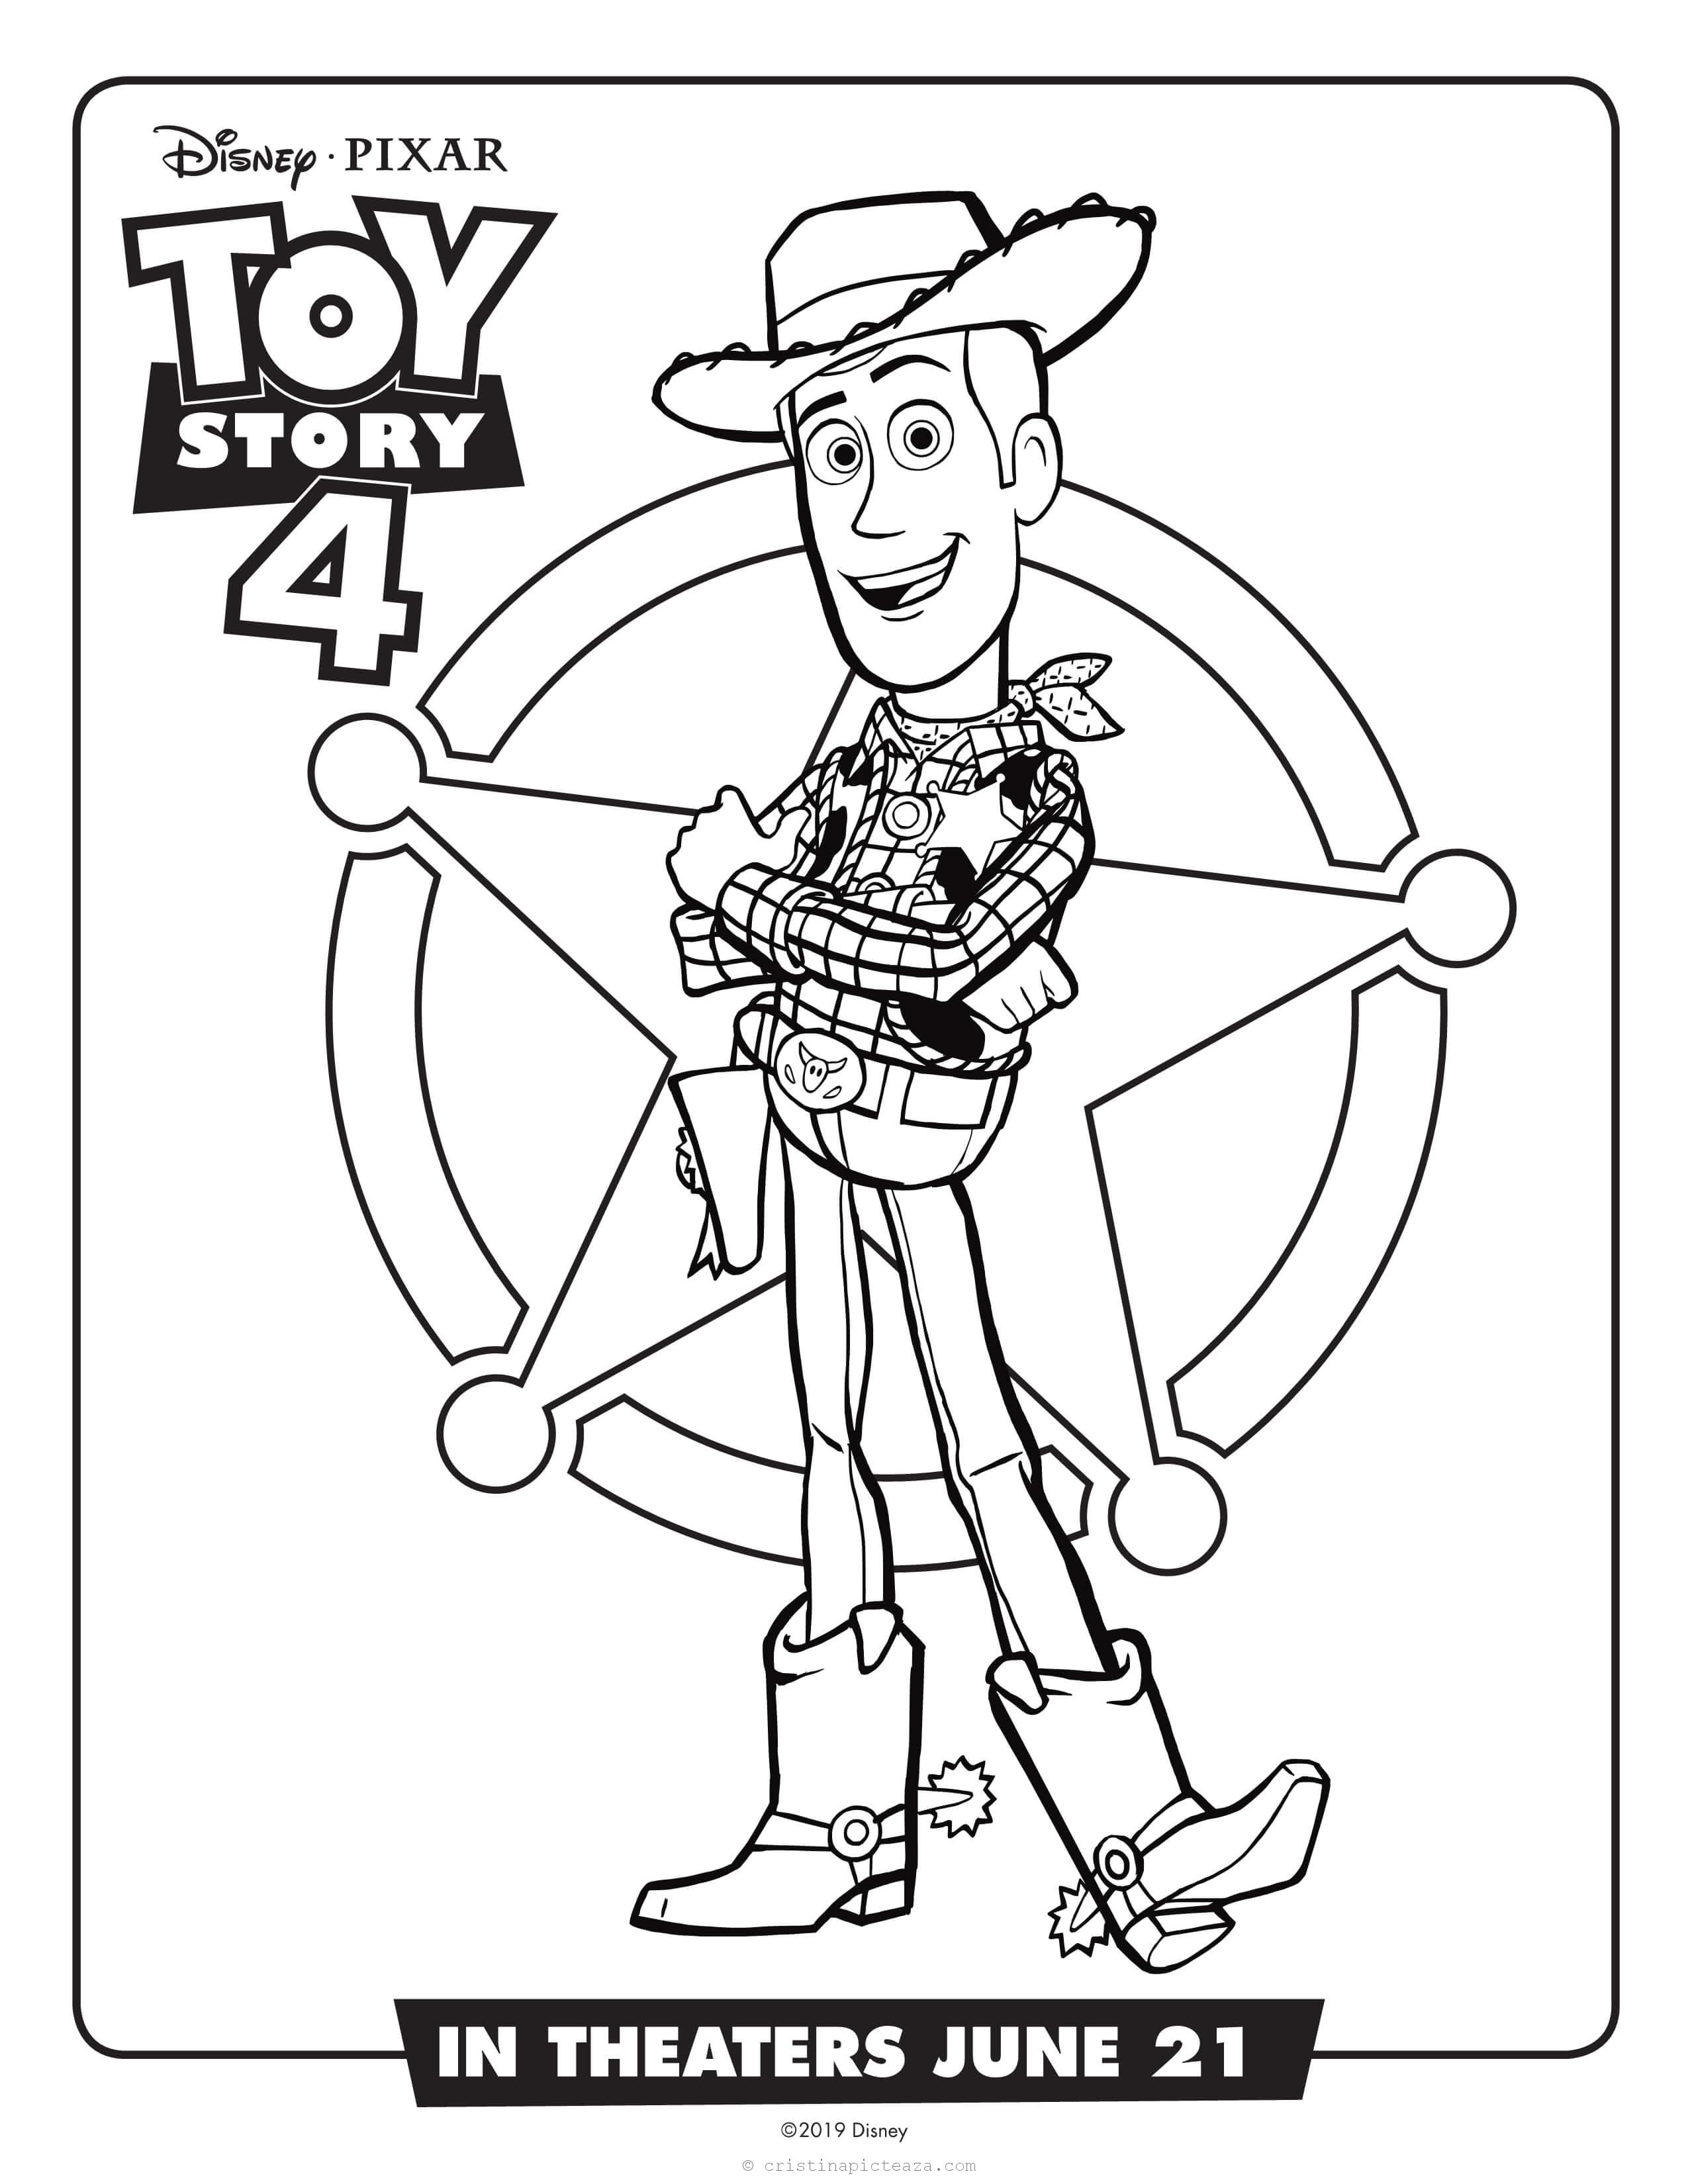 Toy Story 18 Coloring Pages – Pages for paintings and coloring